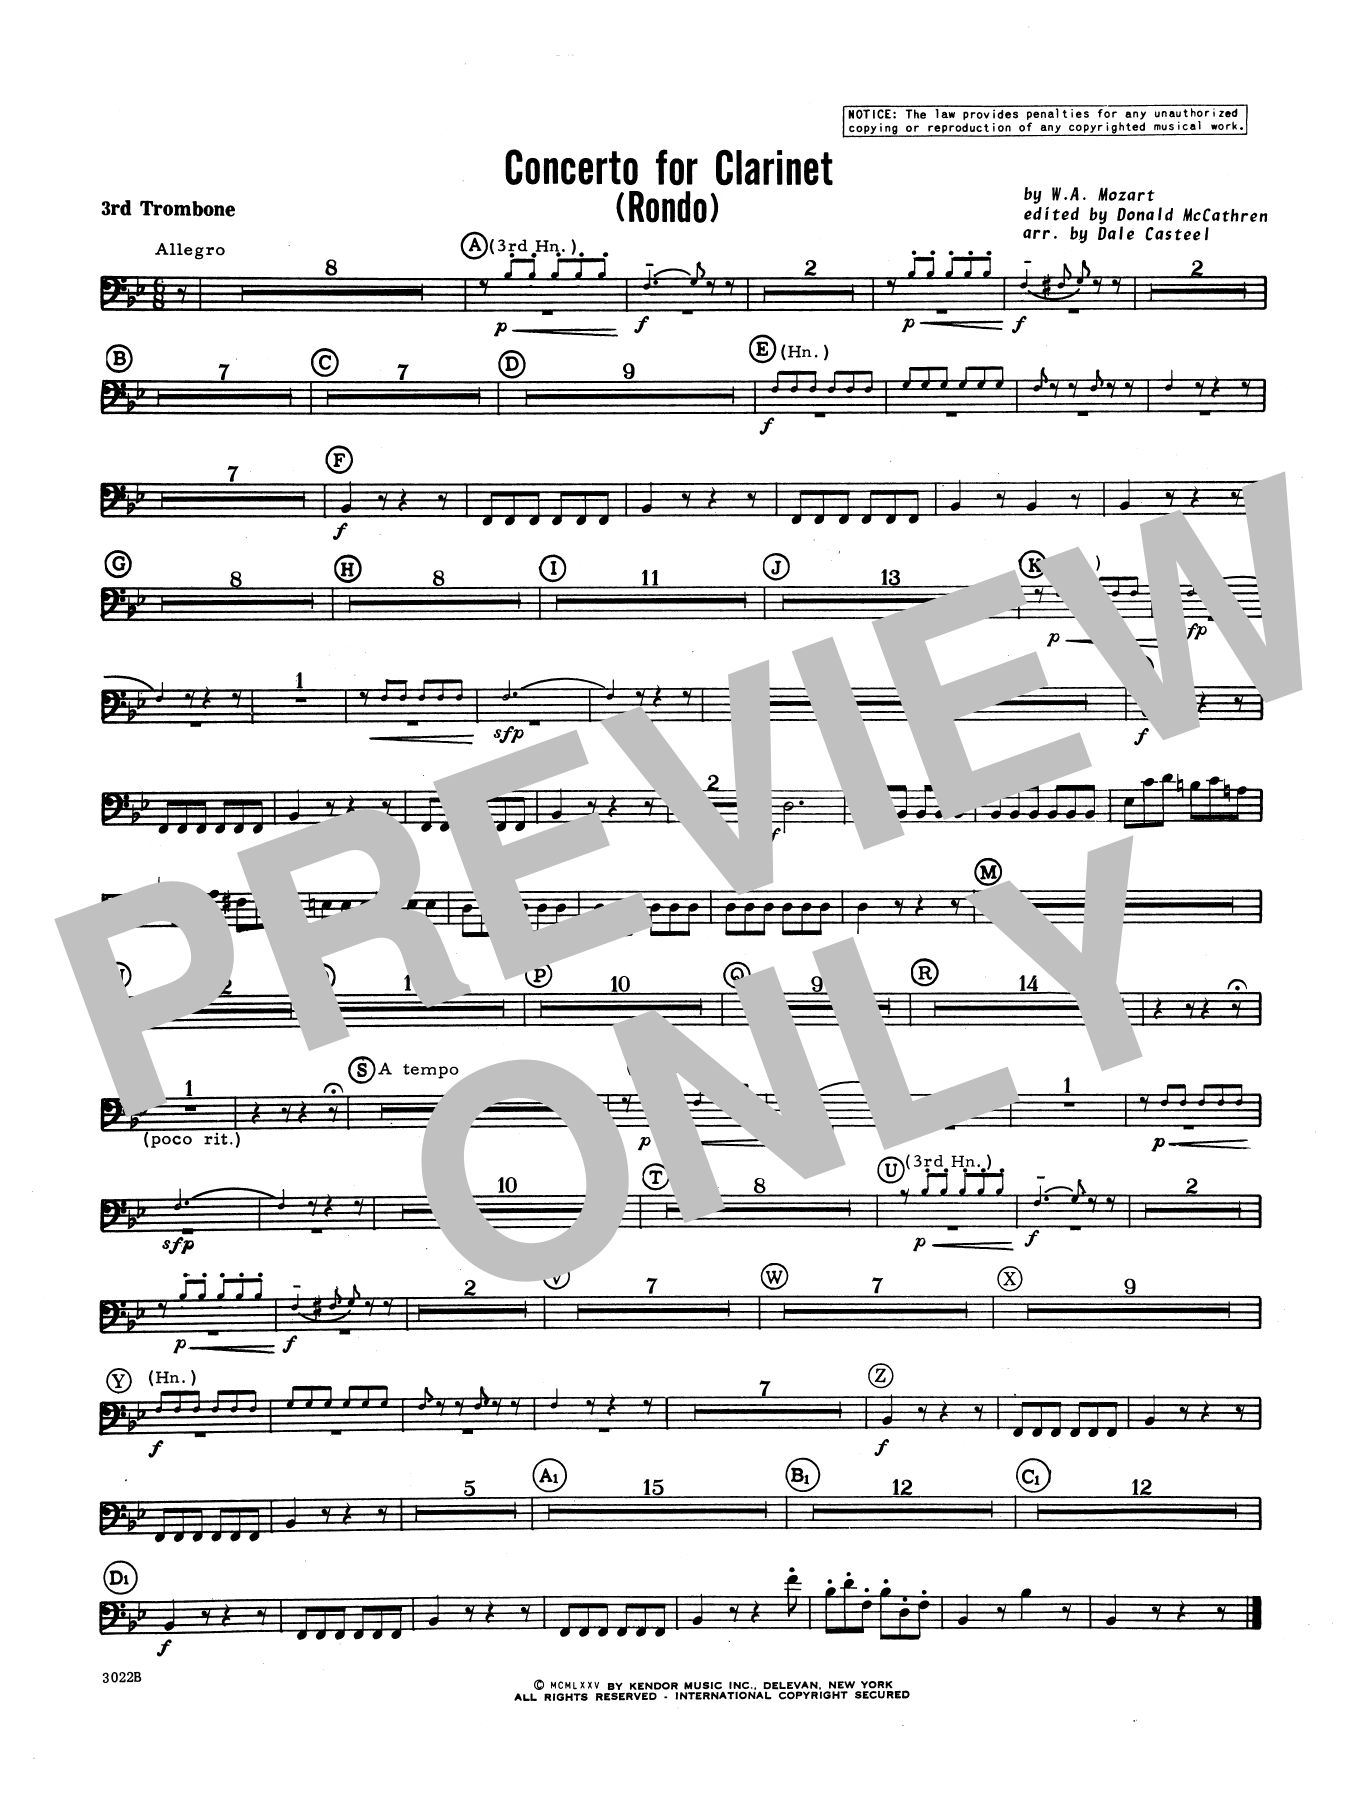 Donald McCathren and Dale Casteel Concerto For Clarinet - Rondo (3rd Movement) - K.622 - 3rd Trombone sheet music notes printable PDF score